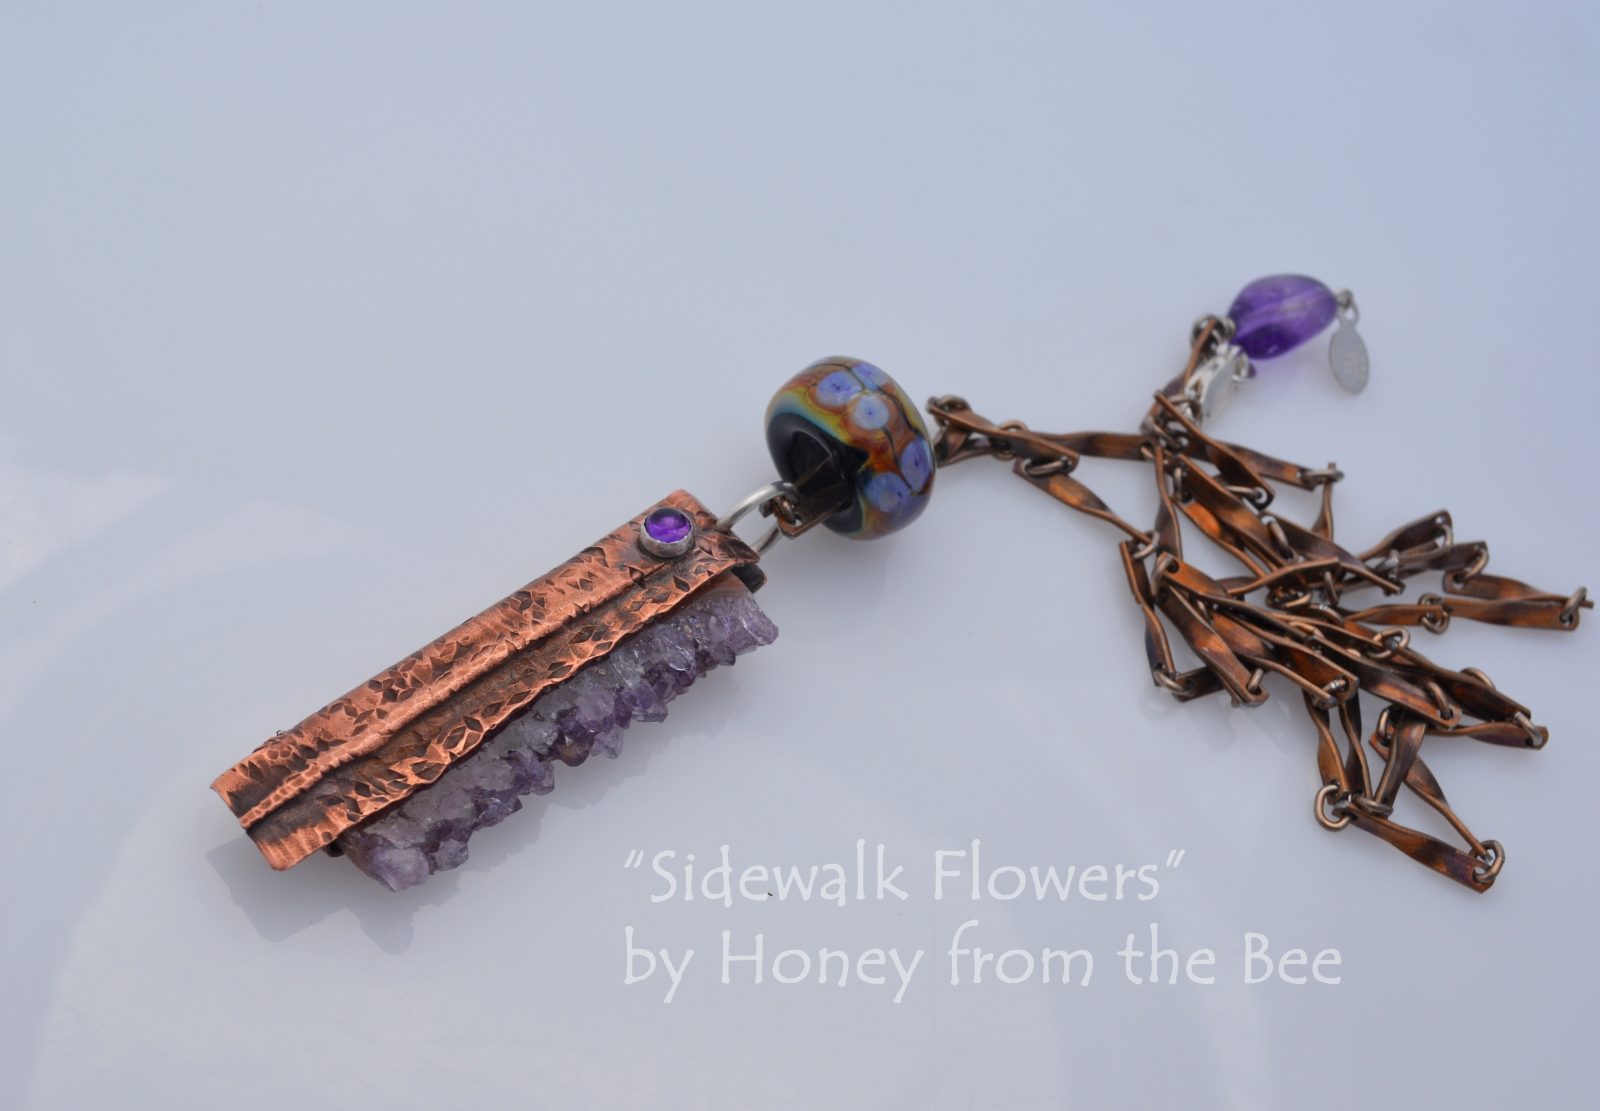 Amethyst and foldformed copper pendant by Honey from the Bee